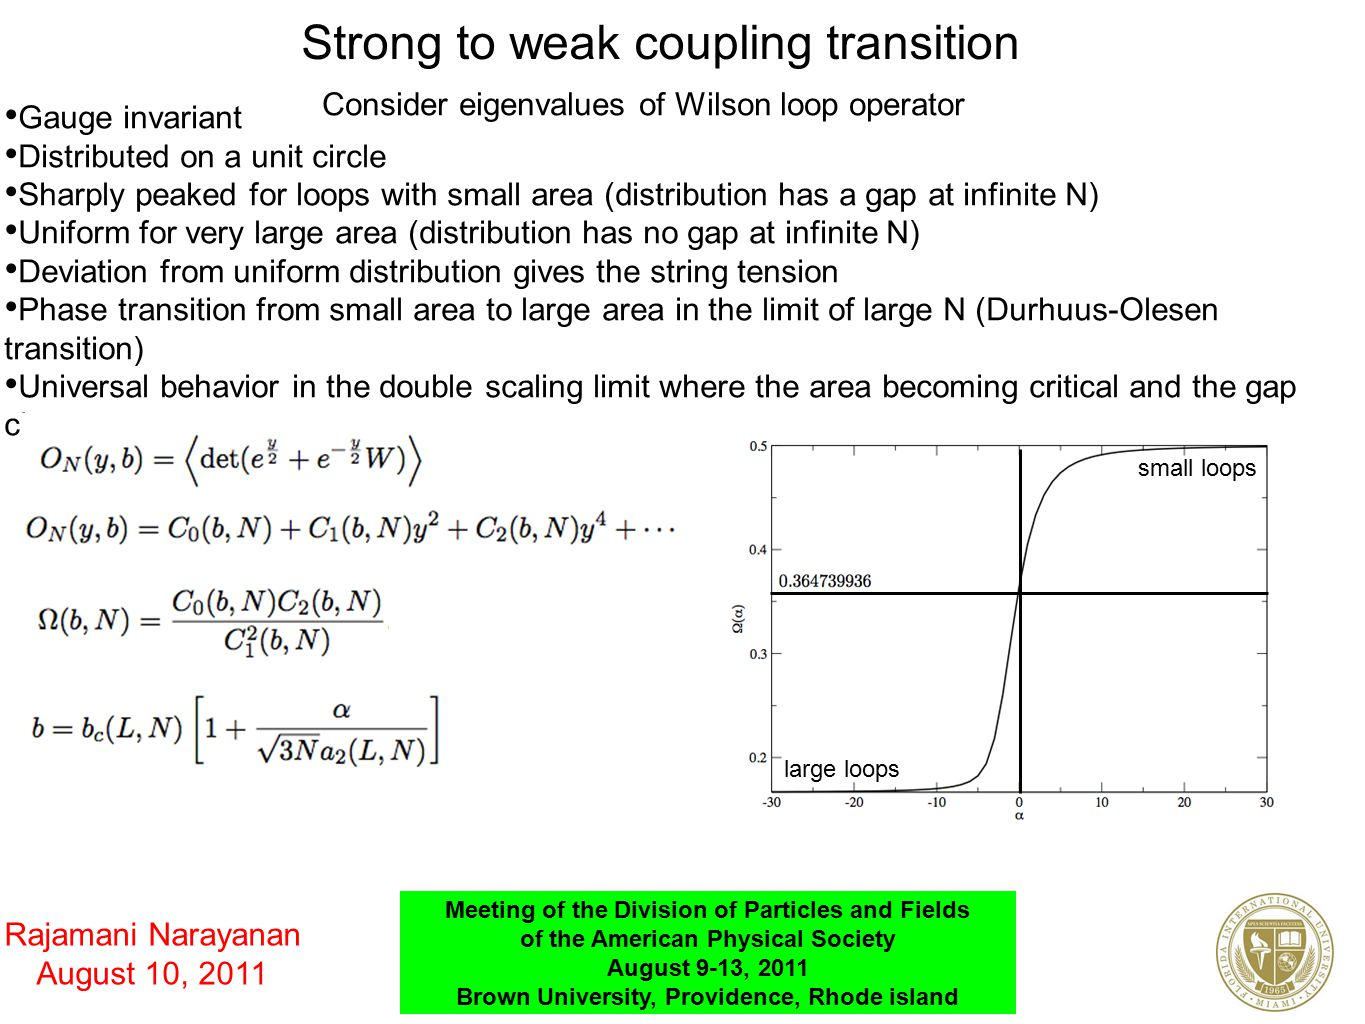 Strong to weak coupling transition Consider eigenvalues of Wilson loop operator Gauge invariant Distributed on a unit circle Sharply peaked for loops with small area (distribution has a gap at infinite N) Uniform for very large area (distribution has no gap at infinite N) Deviation from uniform distribution gives the string tension Phase transition from small area to large area in the limit of large N (Durhuus-Olesen transition) Universal behavior in the double scaling limit where the area becoming critical and the gap closes small loops large loops Rajamani Narayanan August 10, 2011 Meeting of the Division of Particles and Fields of the American Physical Society August 9-13, 2011 Brown University, Providence, Rhode island